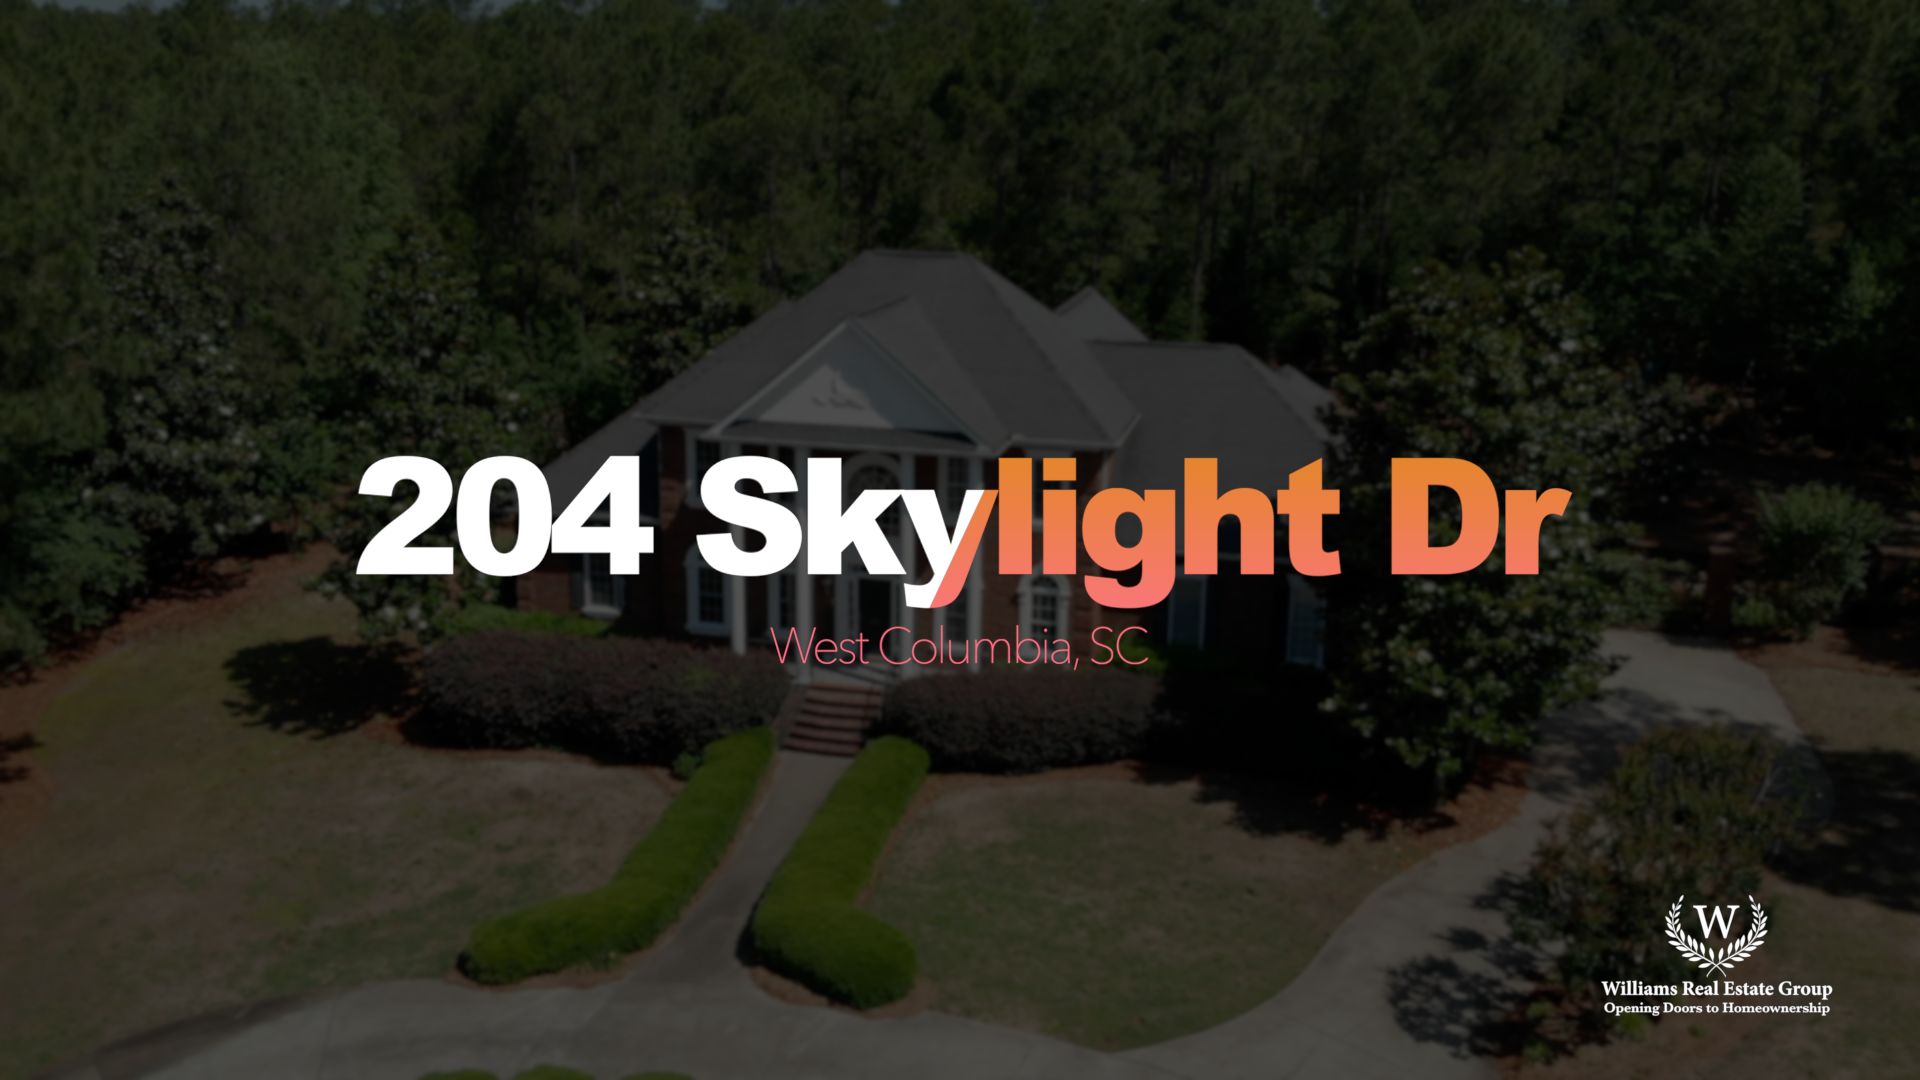 204 Skylight Dr Showcase Video.mp4